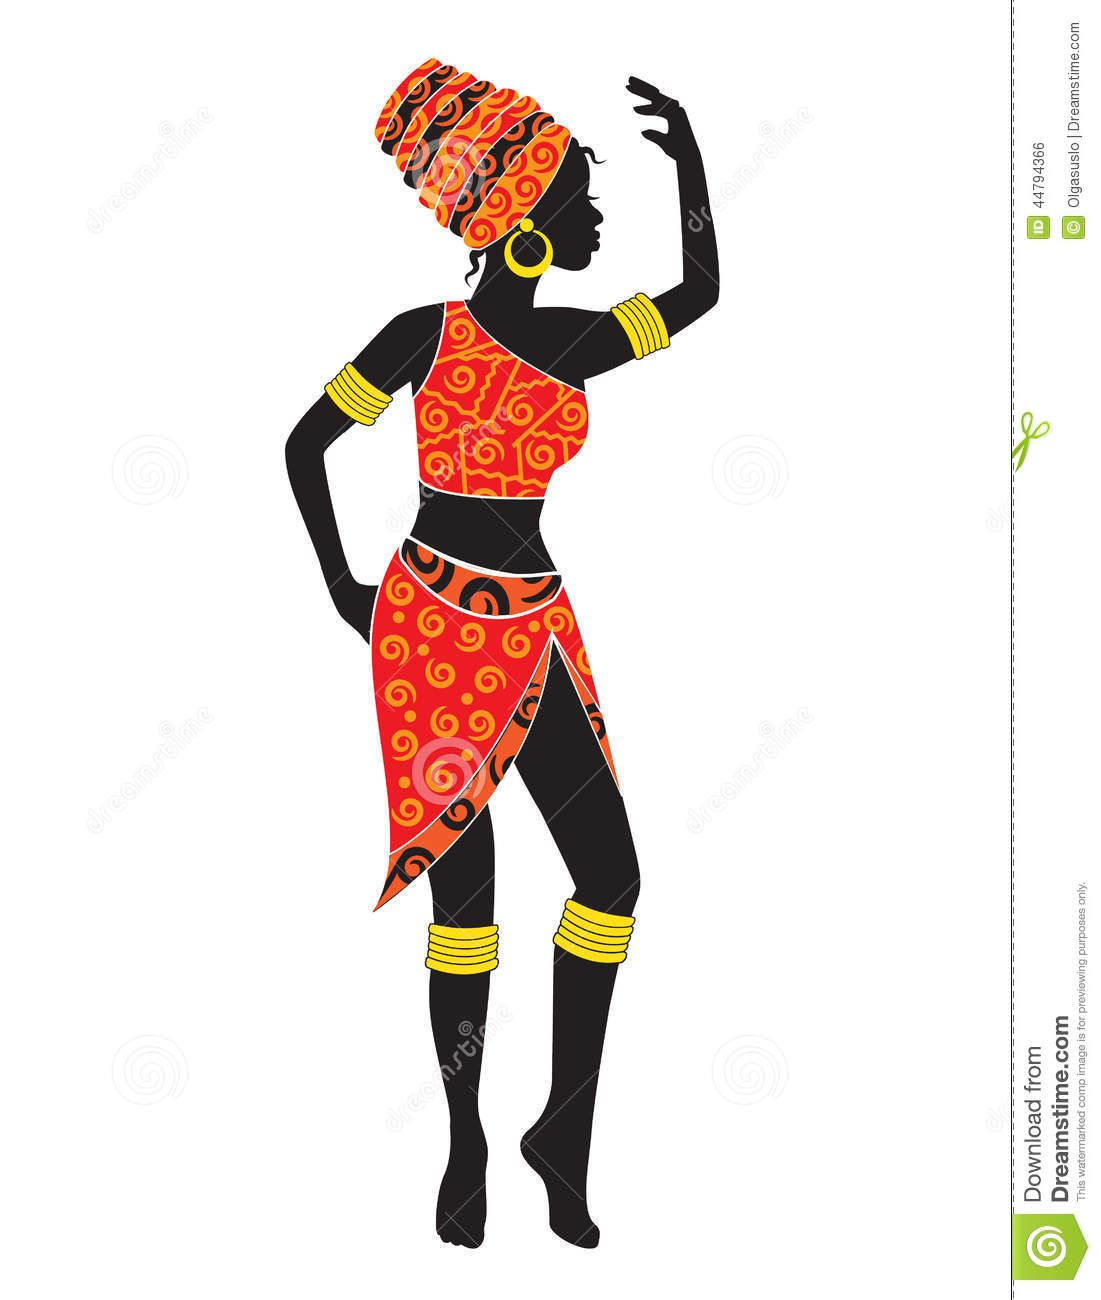 Silhouette Of Dancing African Woman African Women Art African Women Beautiful African Women